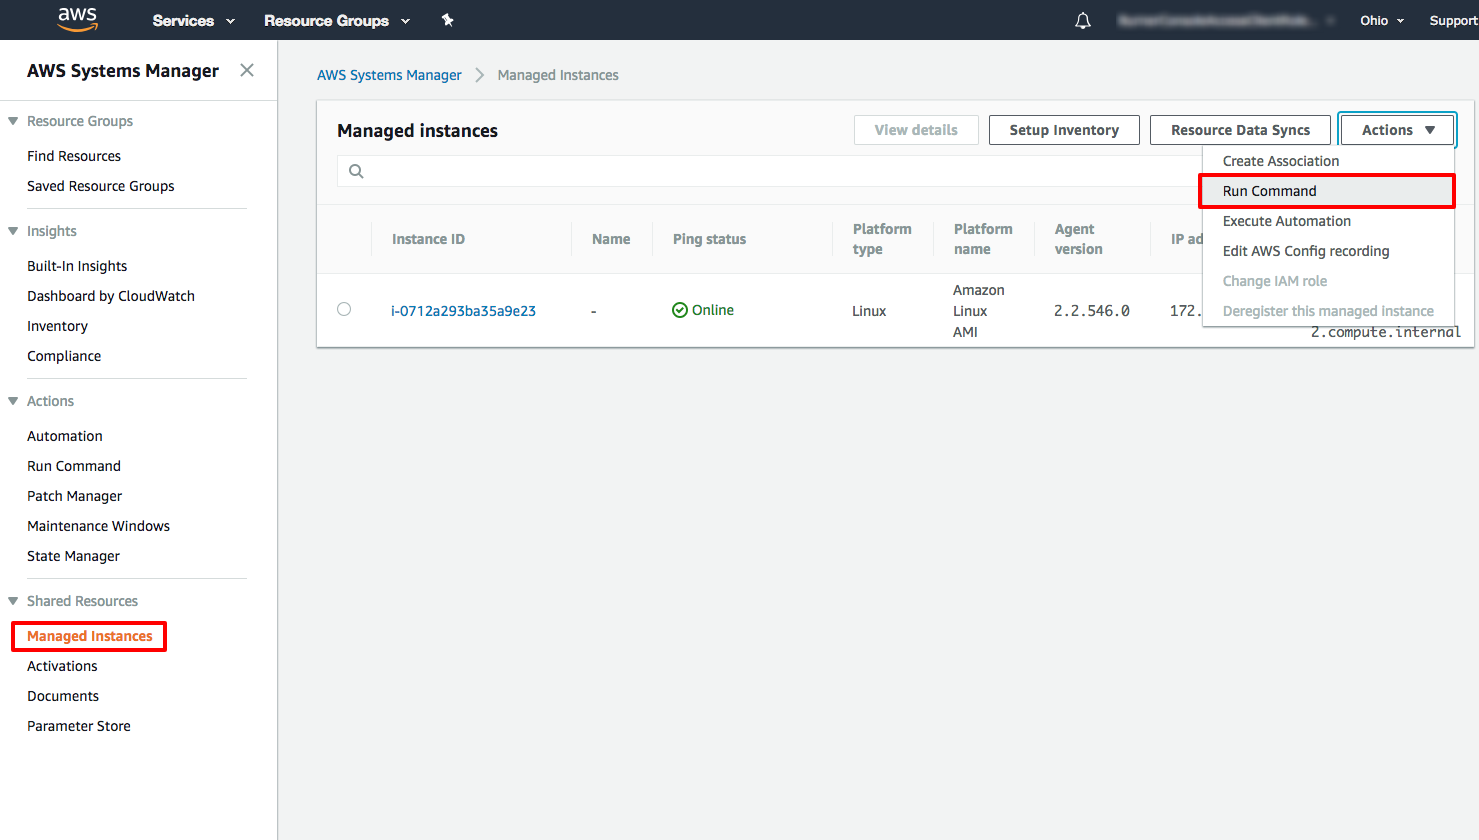 How to Remotely Run Commands on an EC2 Instance with AWS Systems